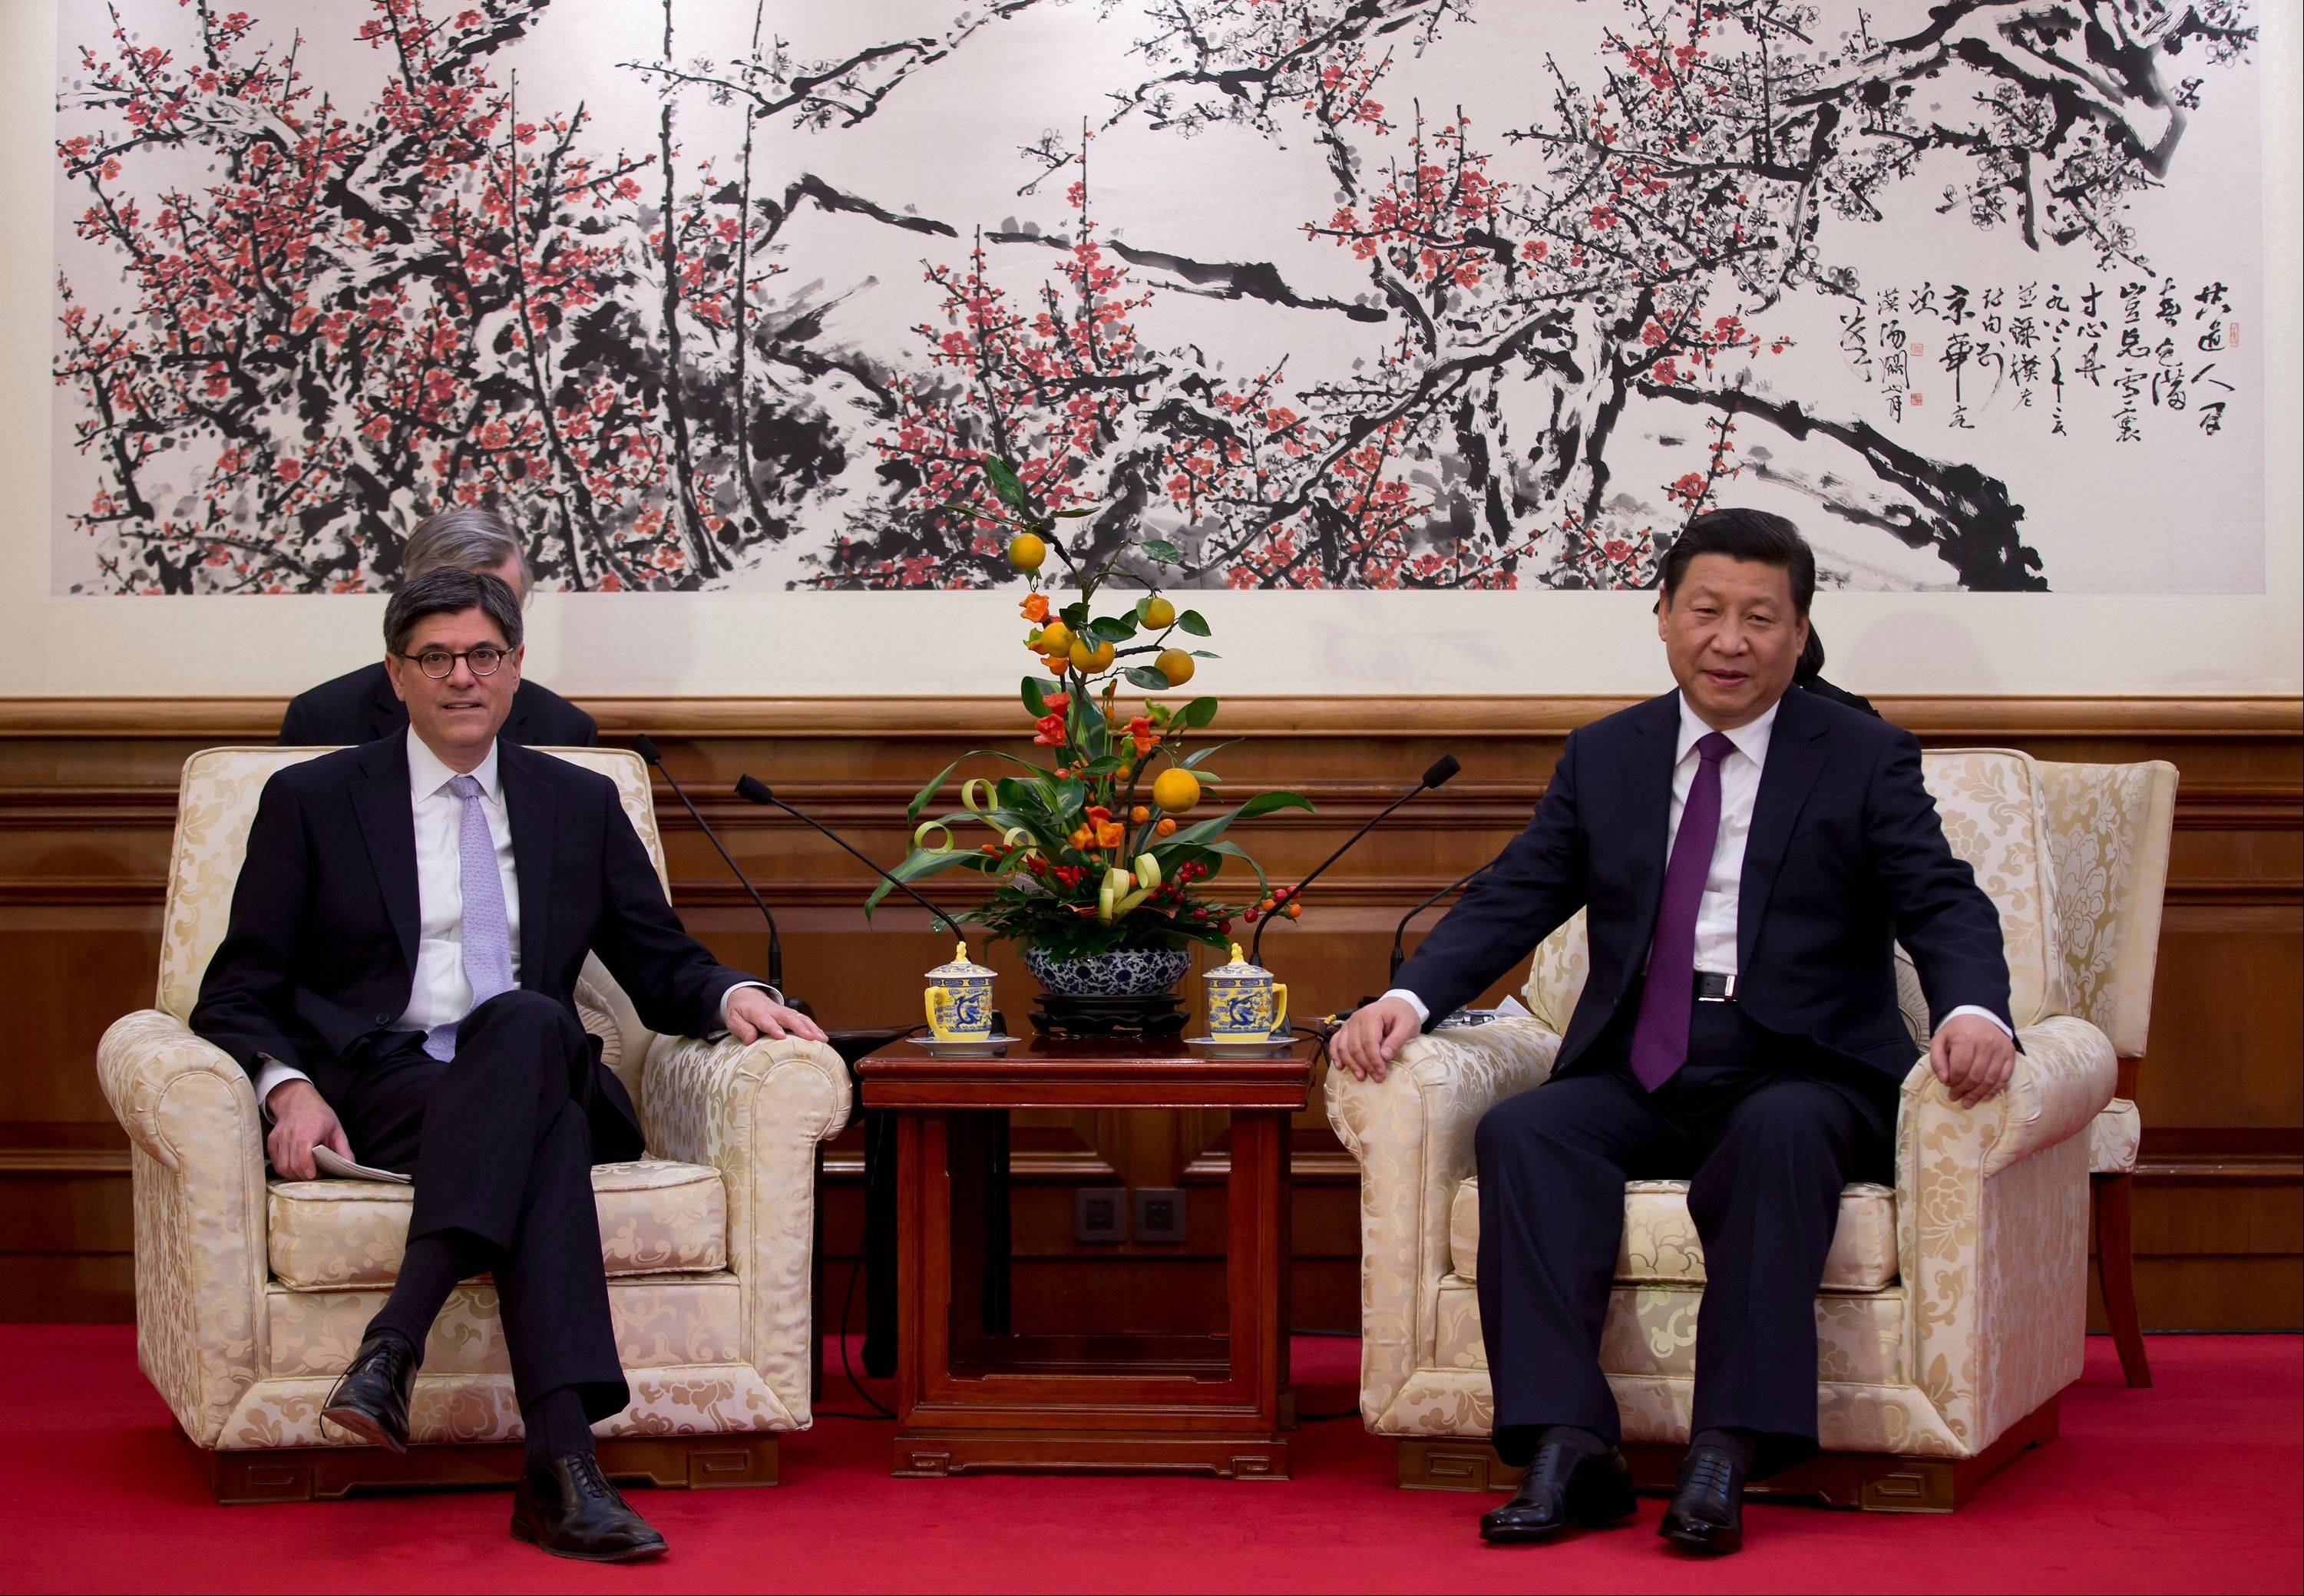 U.S. Treasury Secretary Jack Lew, left, and Chinese President Xi Jinping attend a meeting Friday at the Diaoyutai State Guesthouse in Beijing, China.